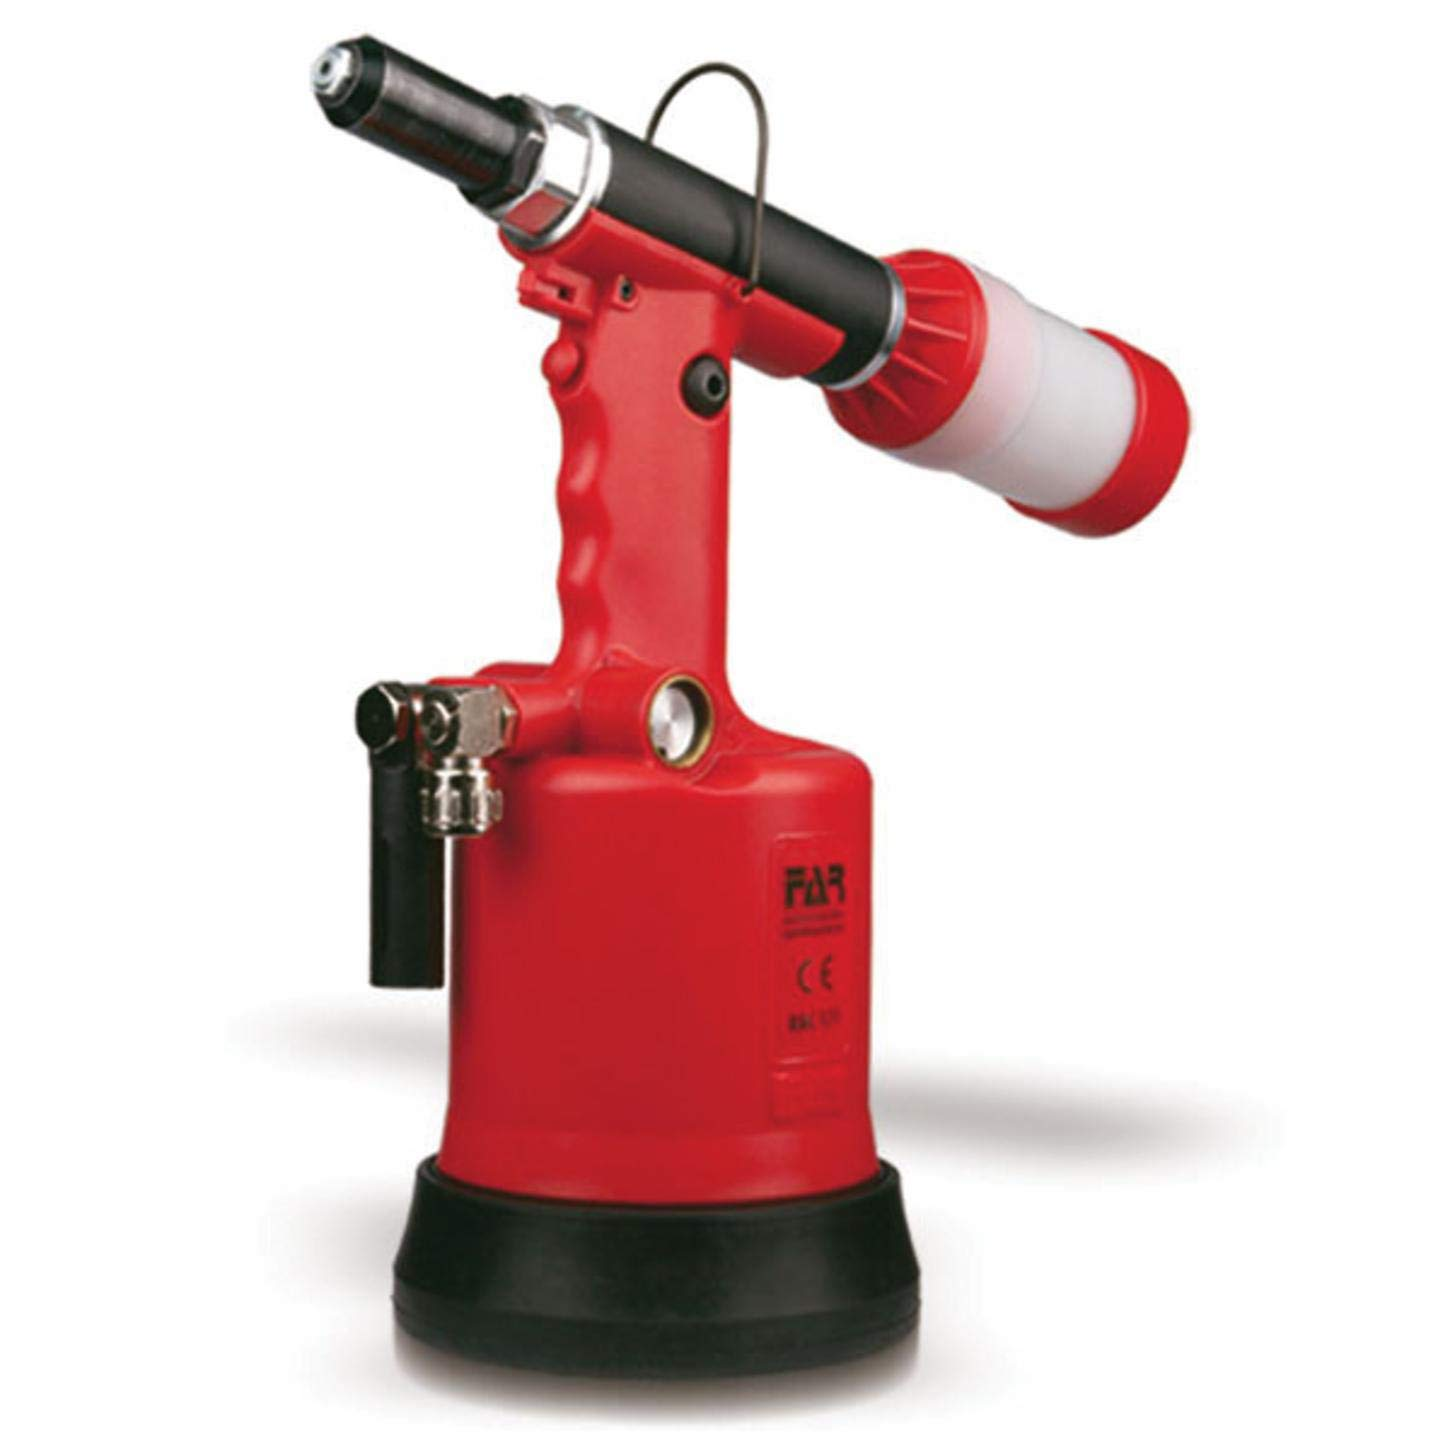 RAC 171 hydropneumatic tool for blind rivets from 3/16'' to 1/4''. (1 PK)